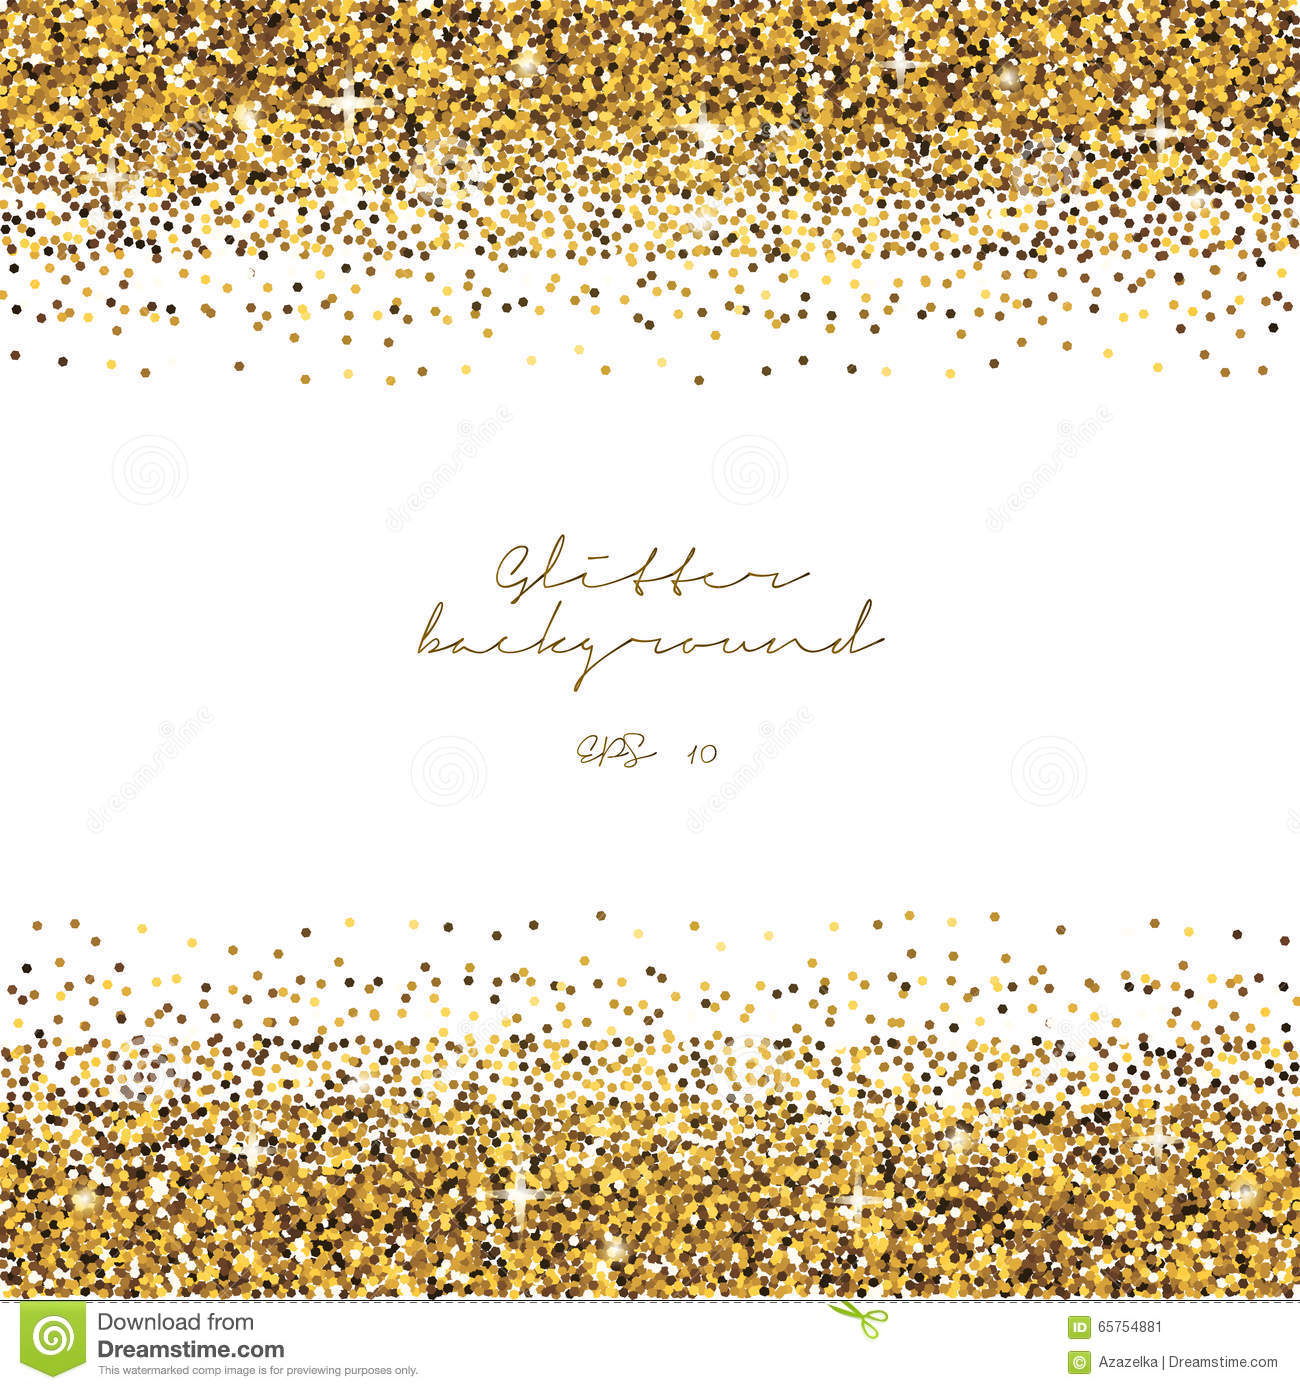 Golden Glitter Border Background. Tinsel Shiny Backdrop. Luxury Gold ...